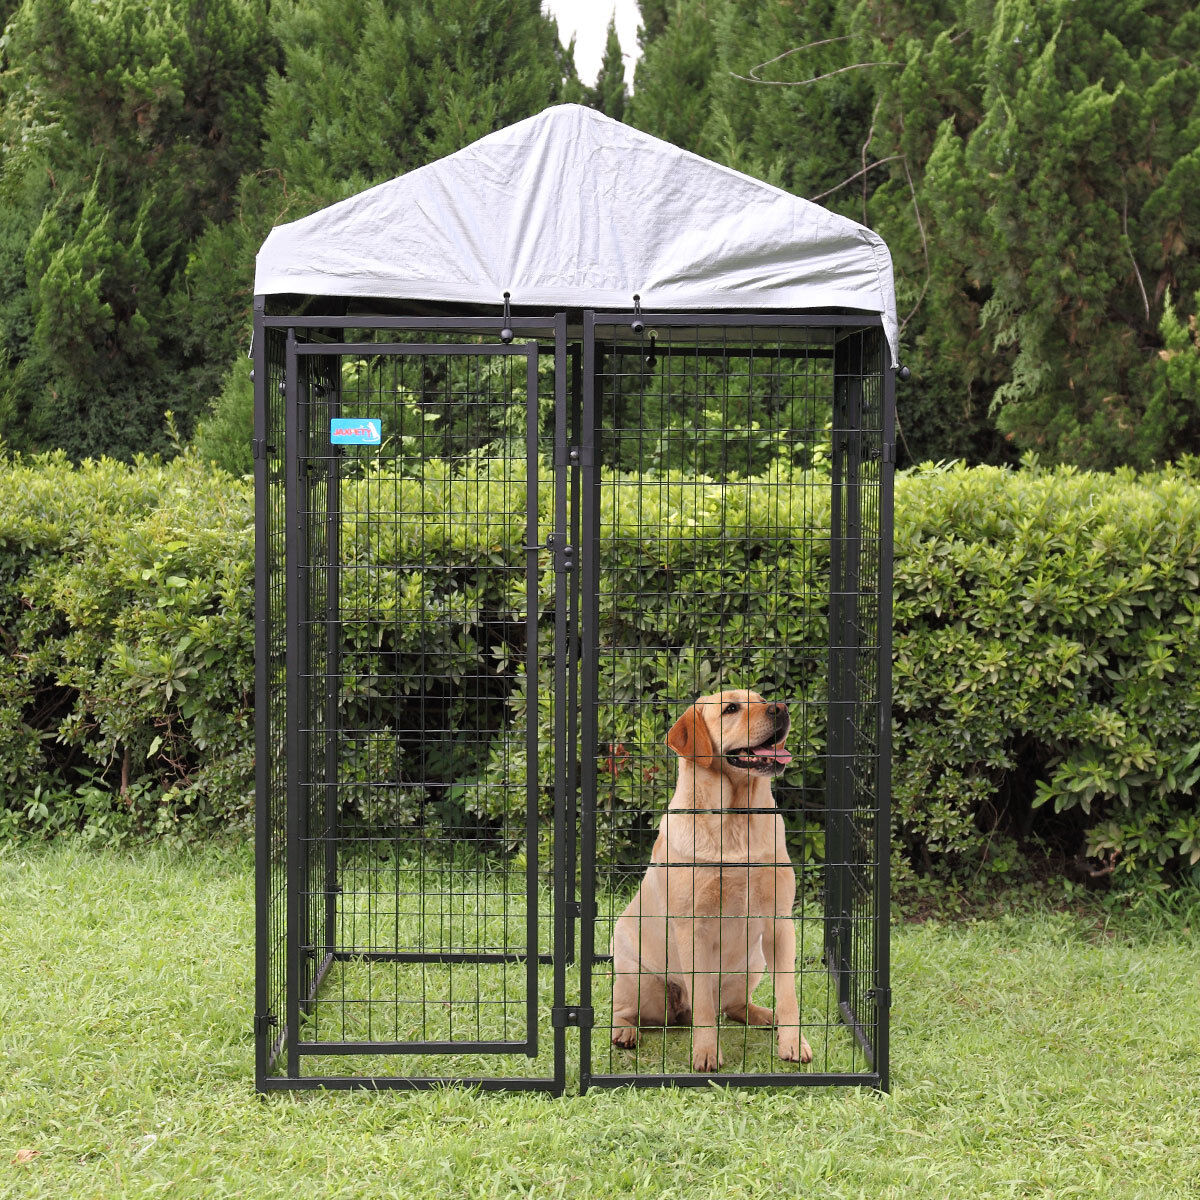 Kennel Steel Wire Pen Run House Outdoor Pet Cage Dog Covered Shade Shelter Yard - $102.50